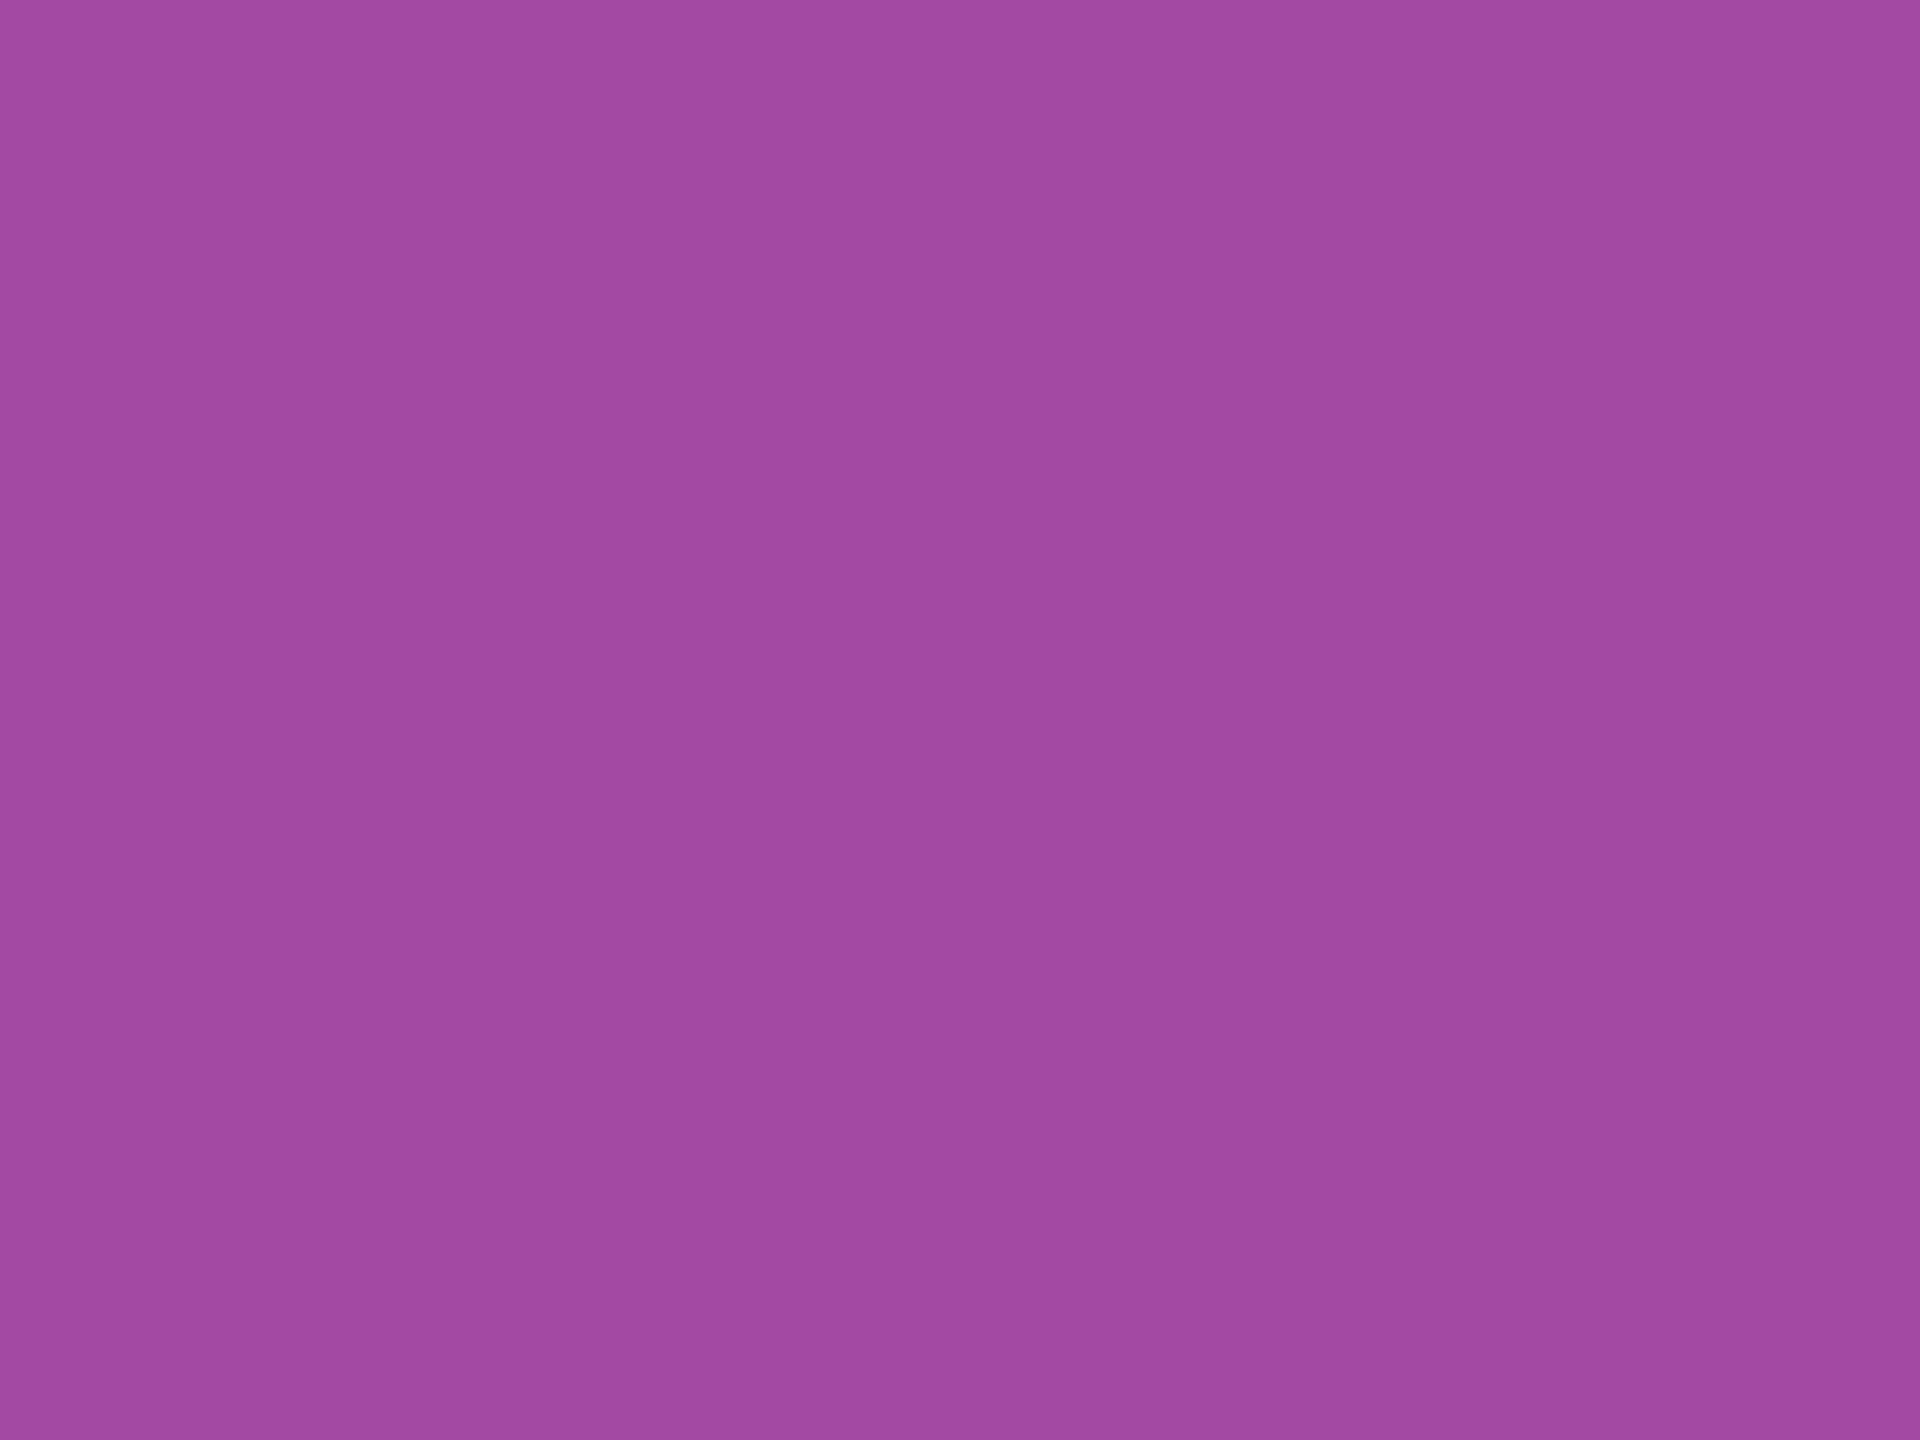 Solid Purple Background Stock Photo HD   Public Domain Pictures 1920x1440